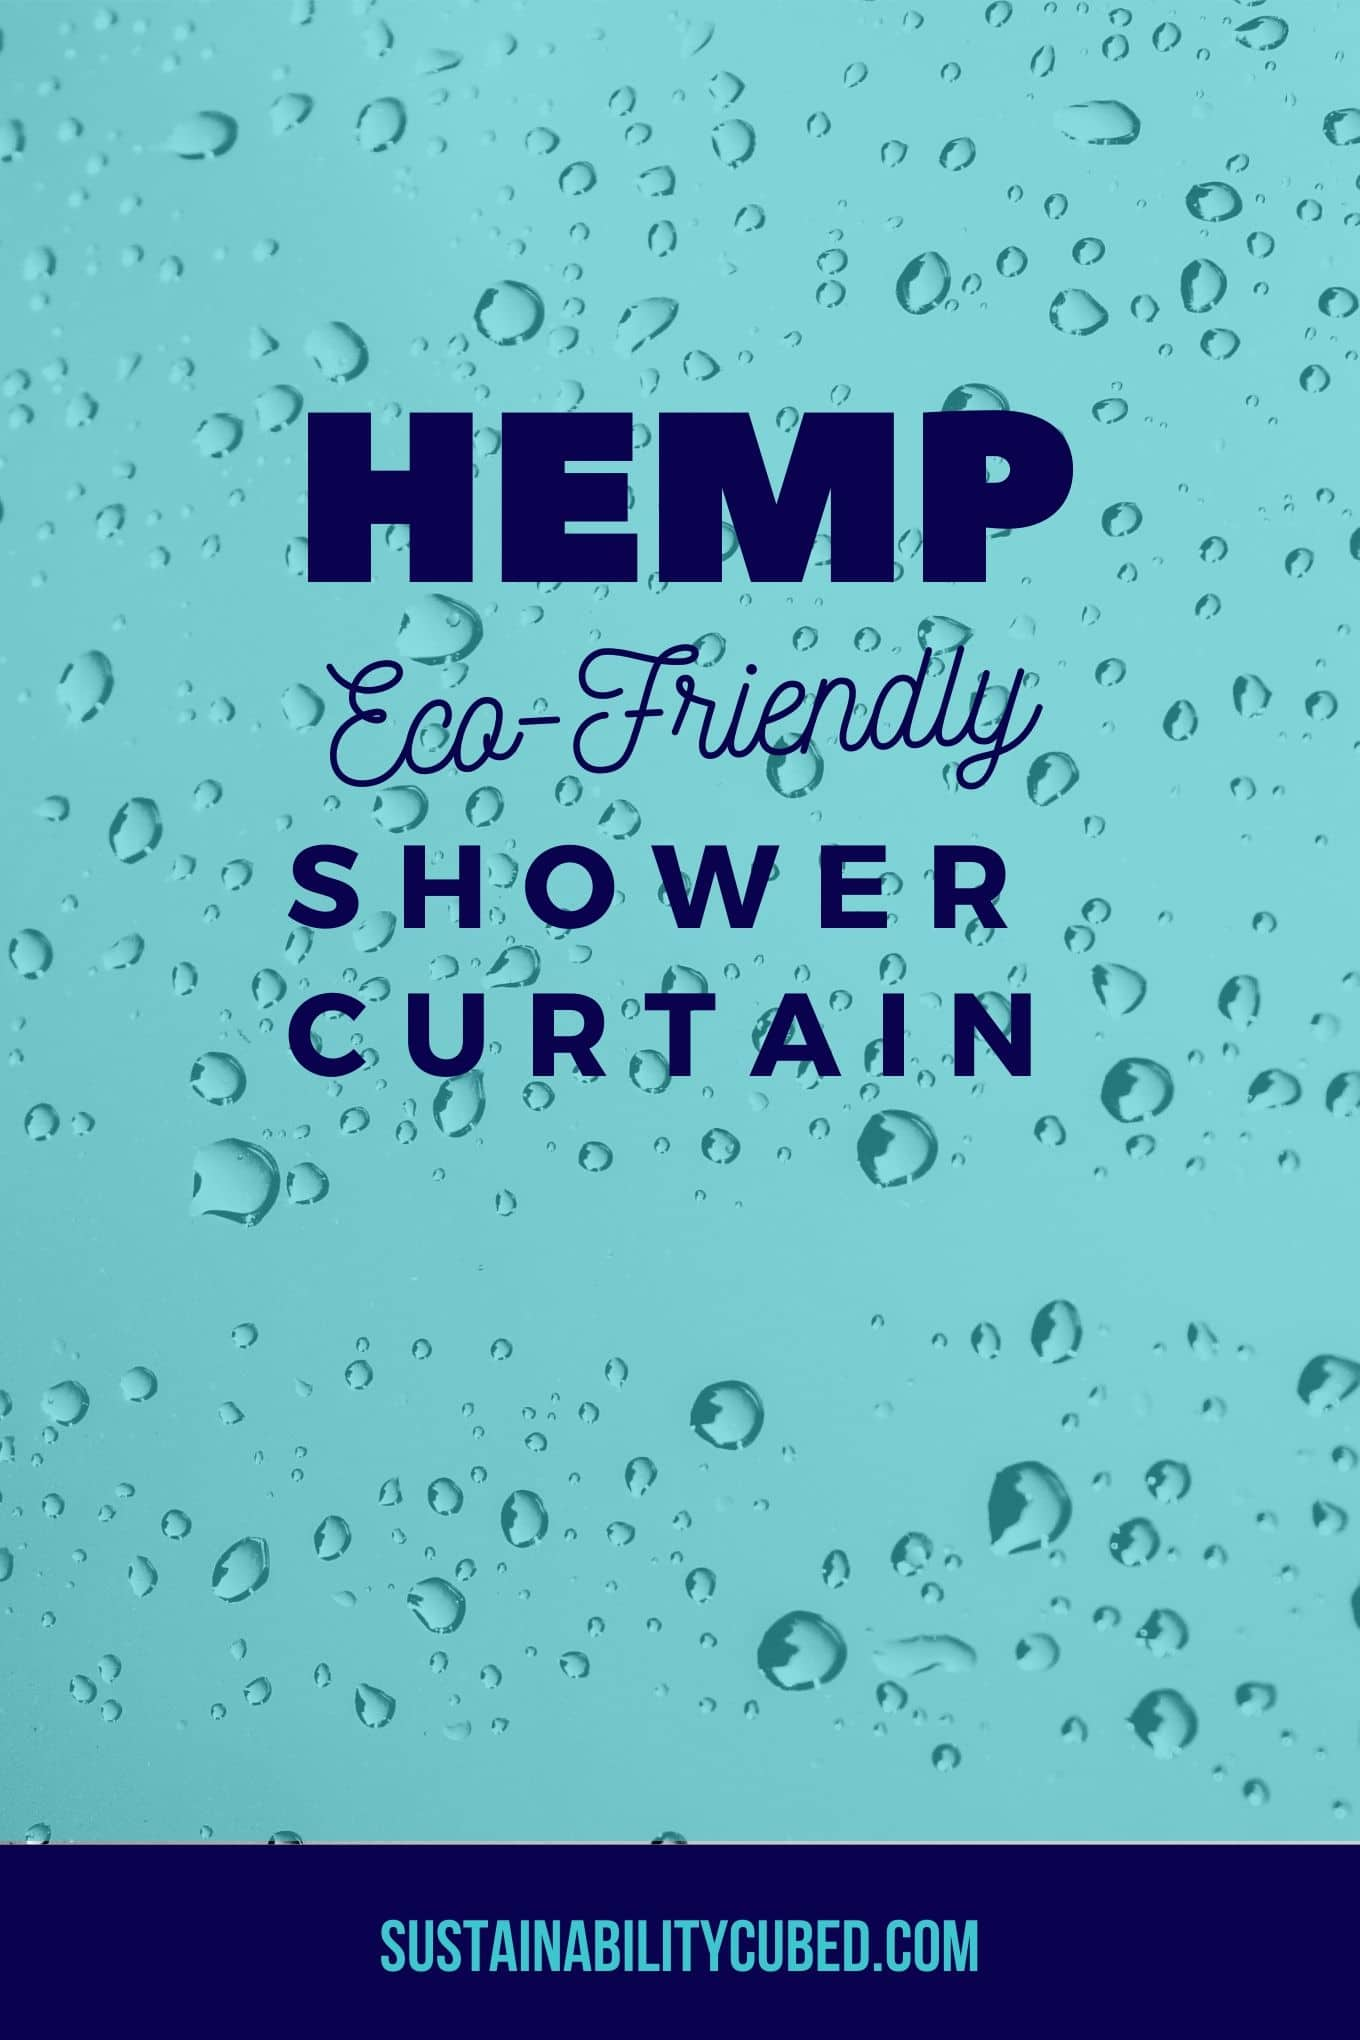 Hemp Shower Curtain: An Easy Zero Waste Swap